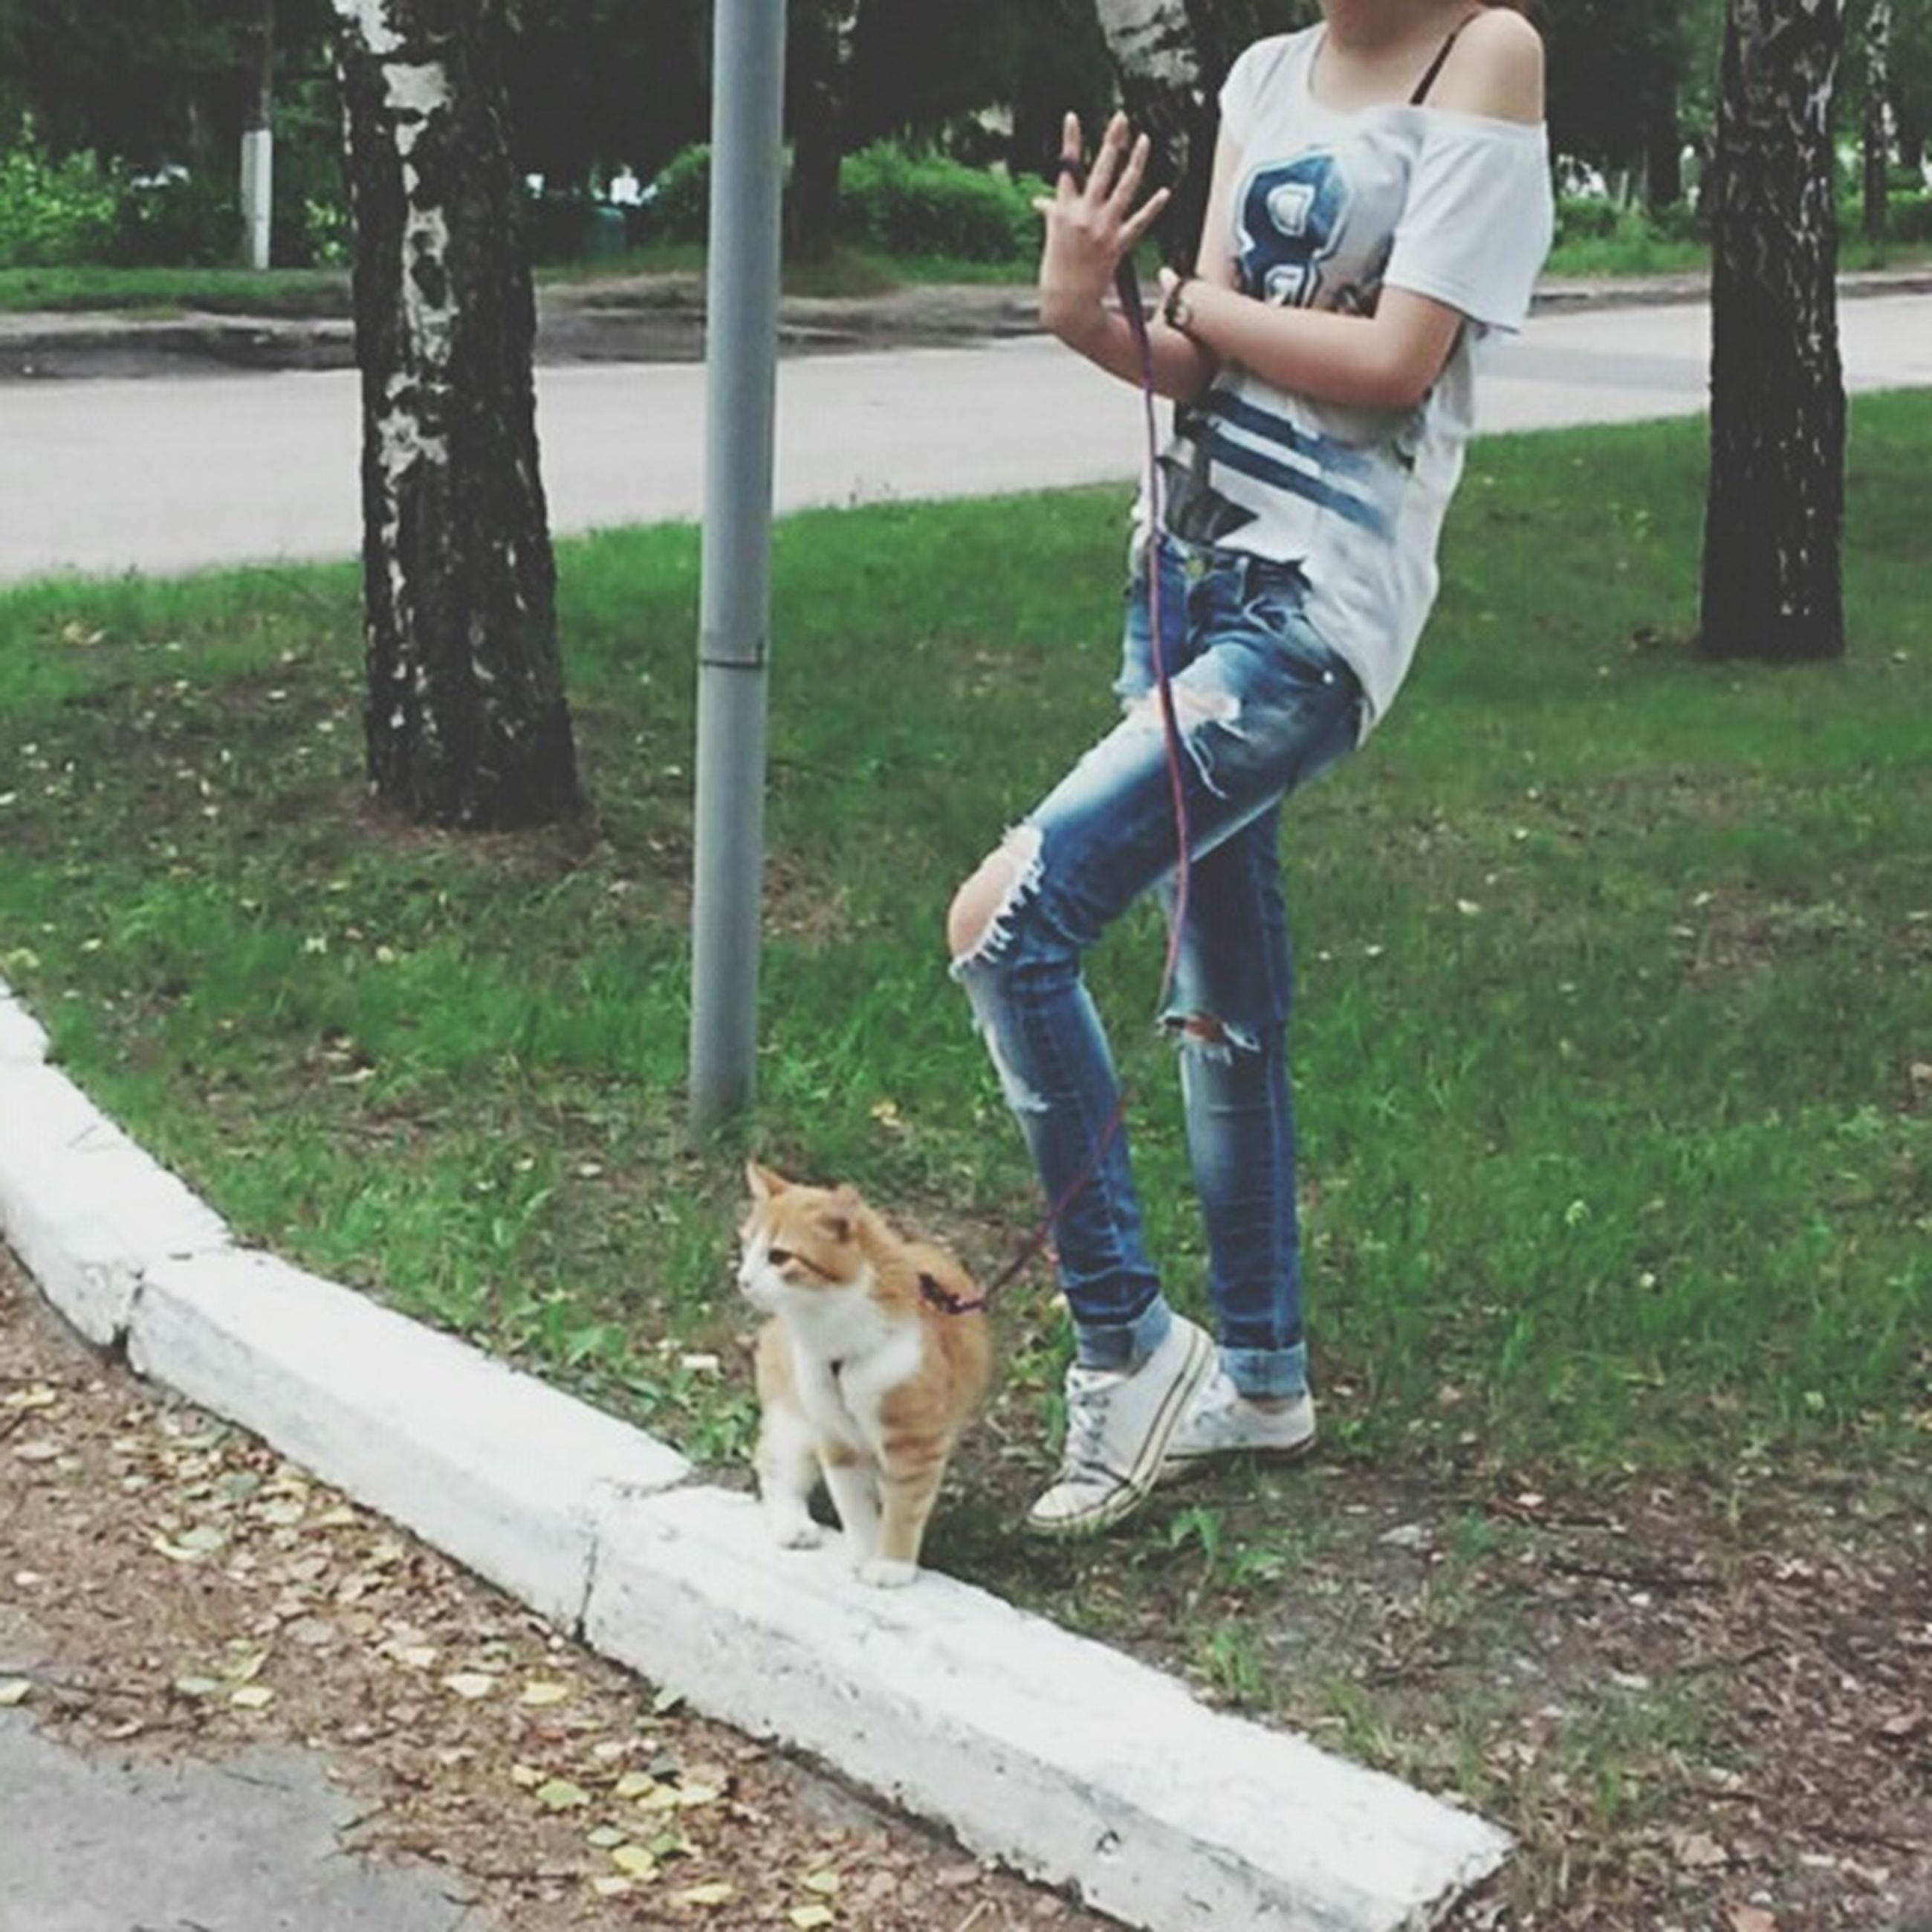 pets, dog, domestic animals, mammal, animal themes, one animal, lifestyles, leisure activity, full length, pet owner, pet leash, tree, park - man made space, casual clothing, grass, standing, canine, playing